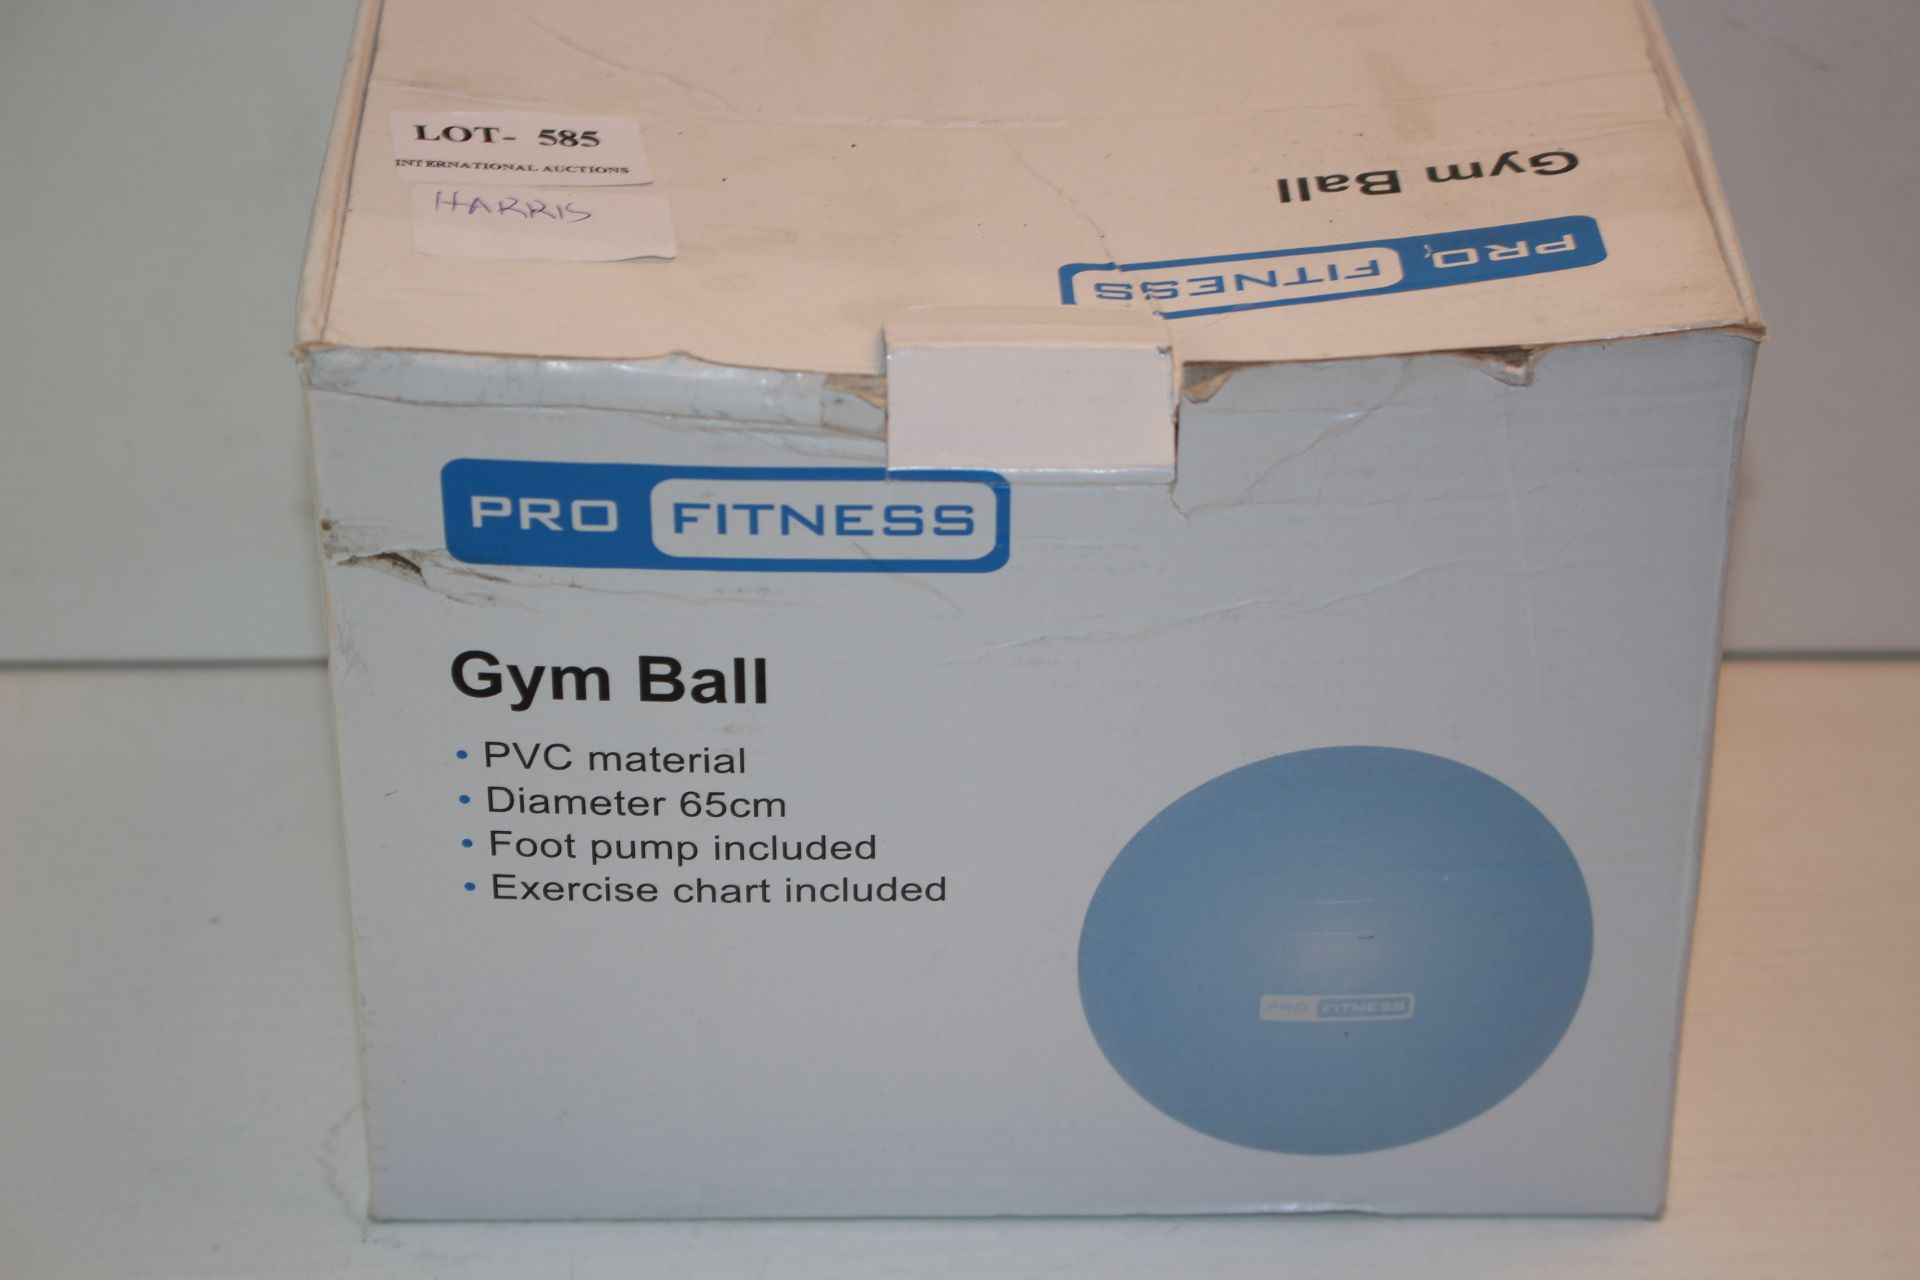 BOXED GYM BALL Condition ReportAppraisal Available on Request- All Items are Unchecked/Untested